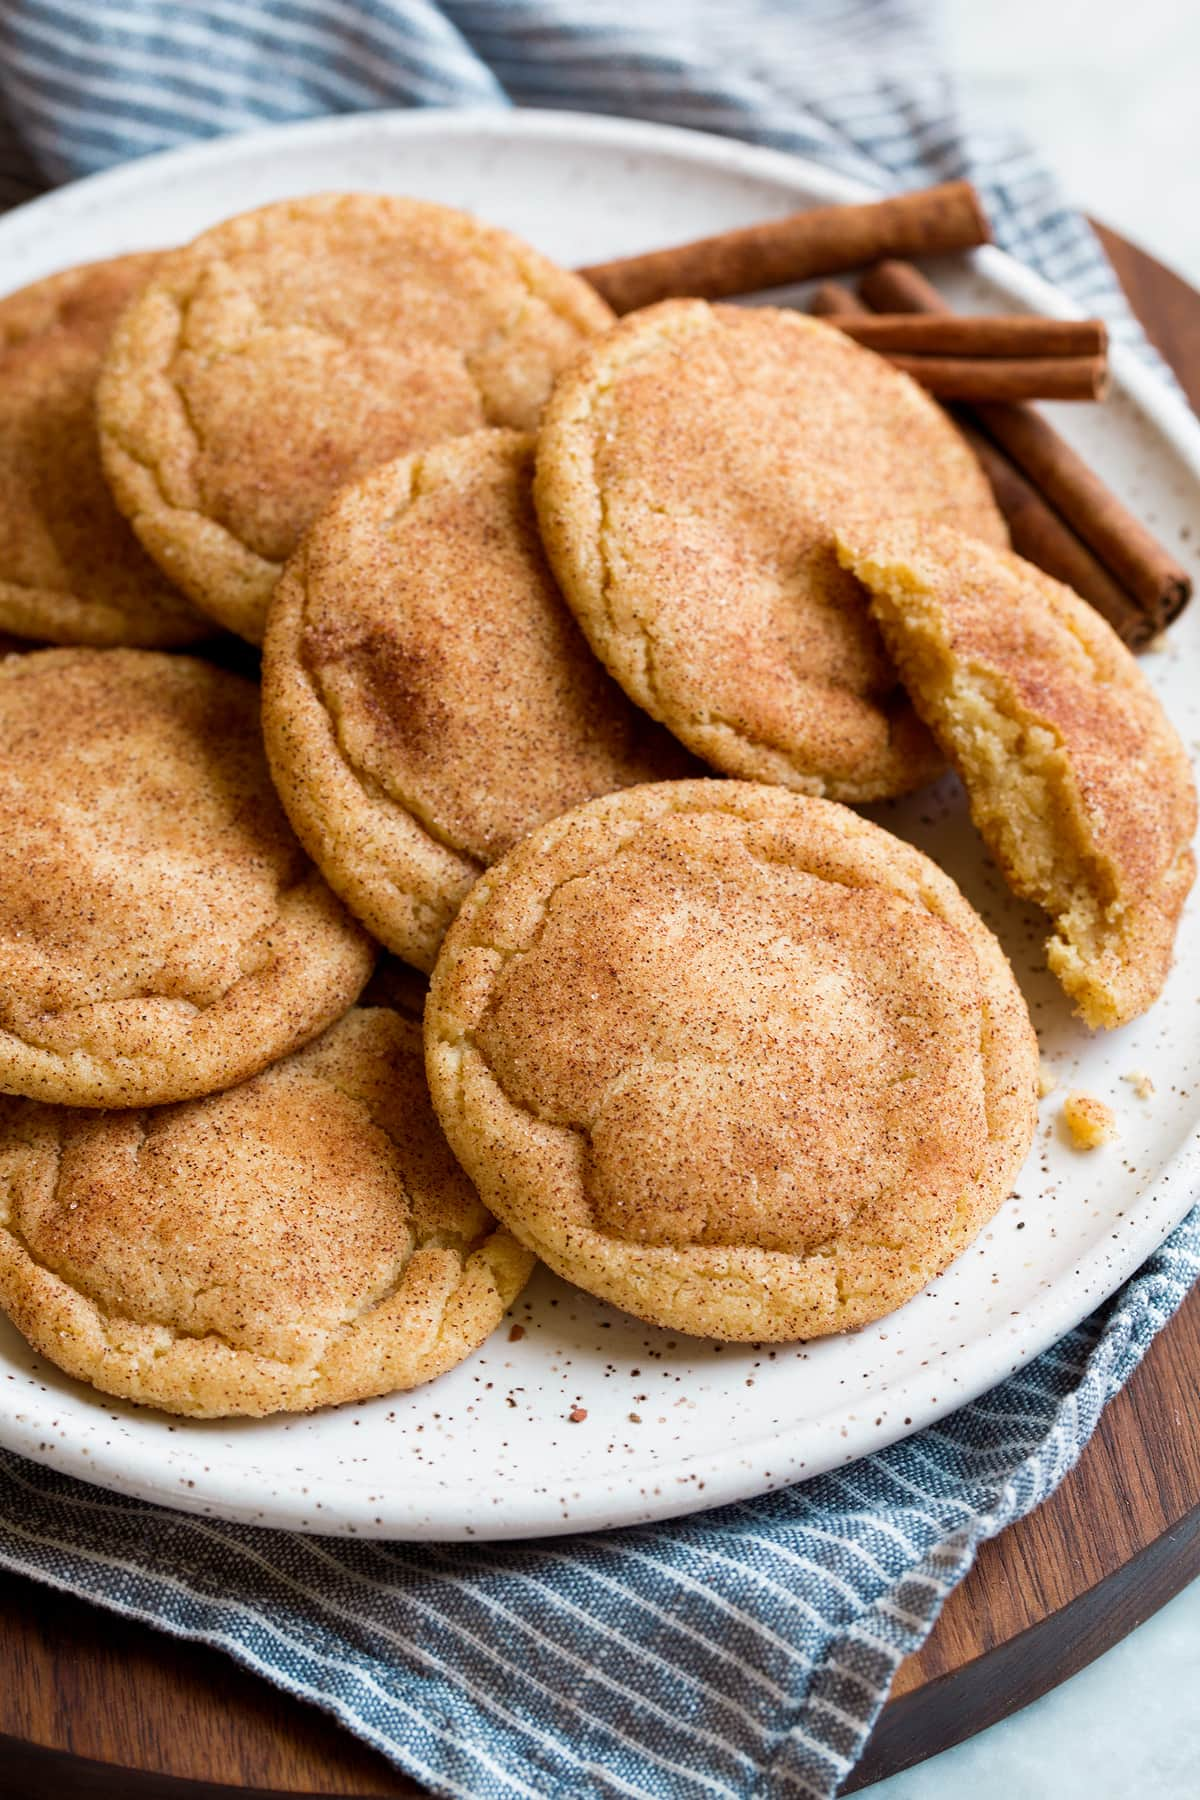 Snickerdoodle Cookies Recipe {Soft and Chewy!} - Cooking Classy